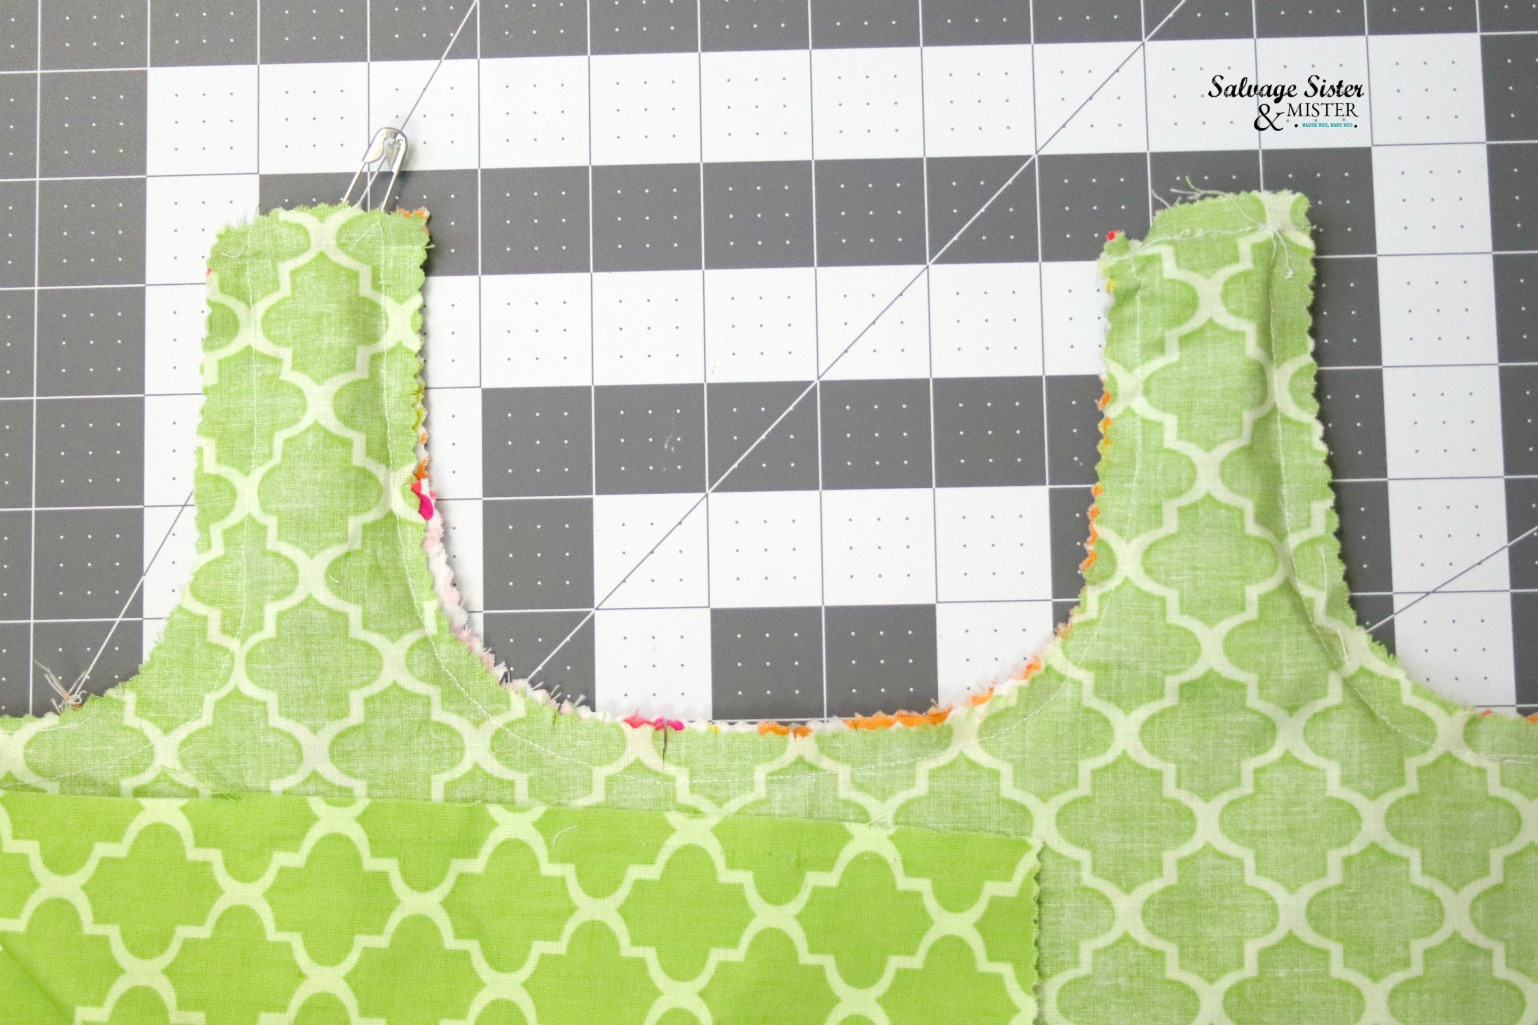 reusable shopping bag that is reversible on salvagesisterandmister.com